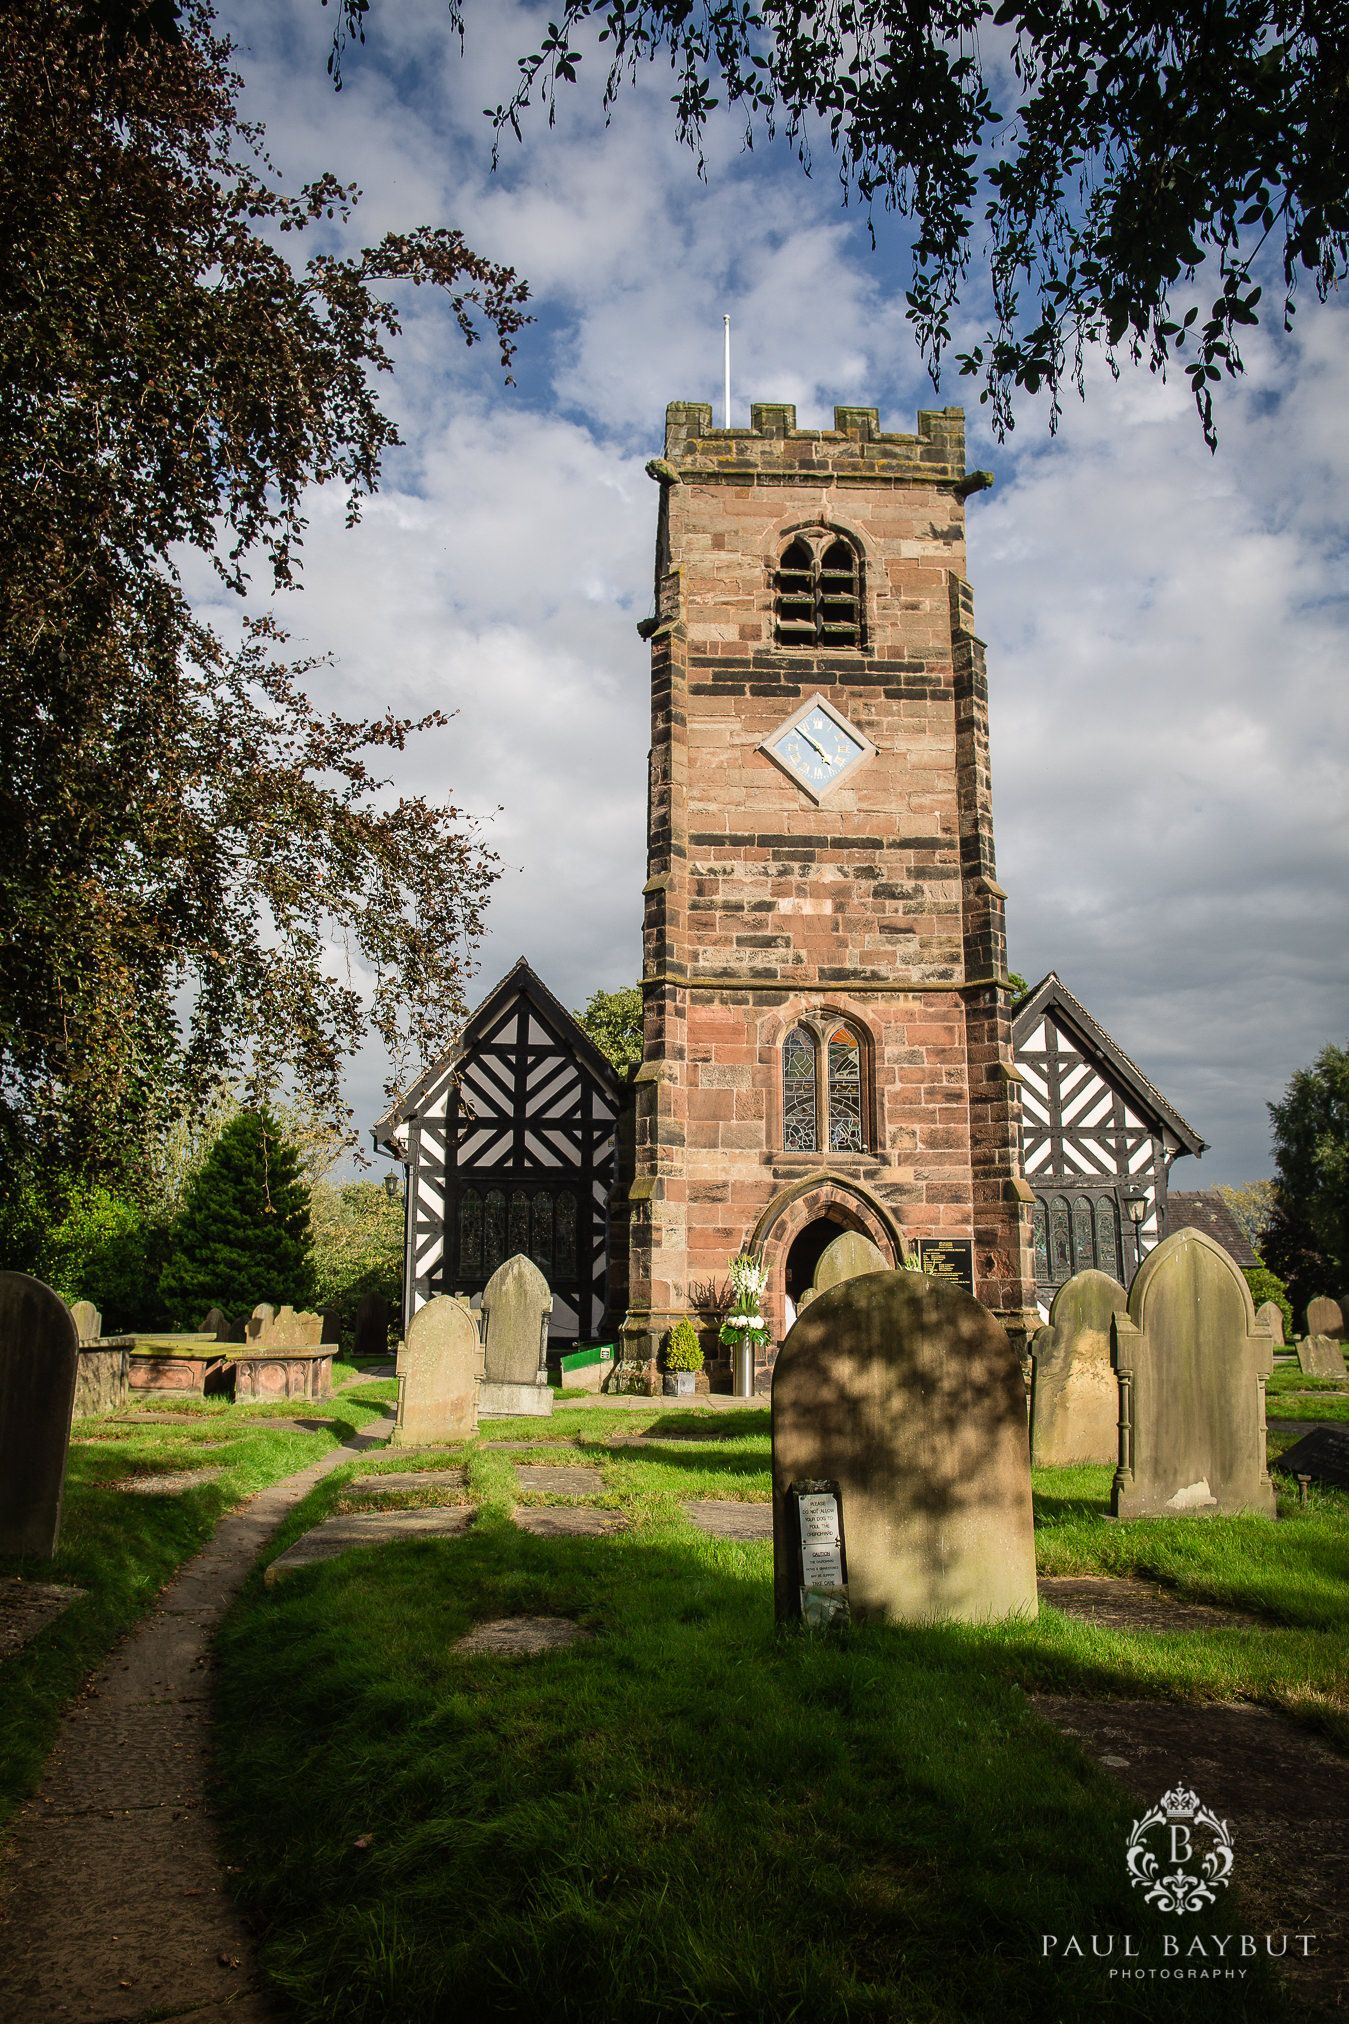 St Oswald's church tower clock and graveyard in Little Peover Cheshire on a sunny day